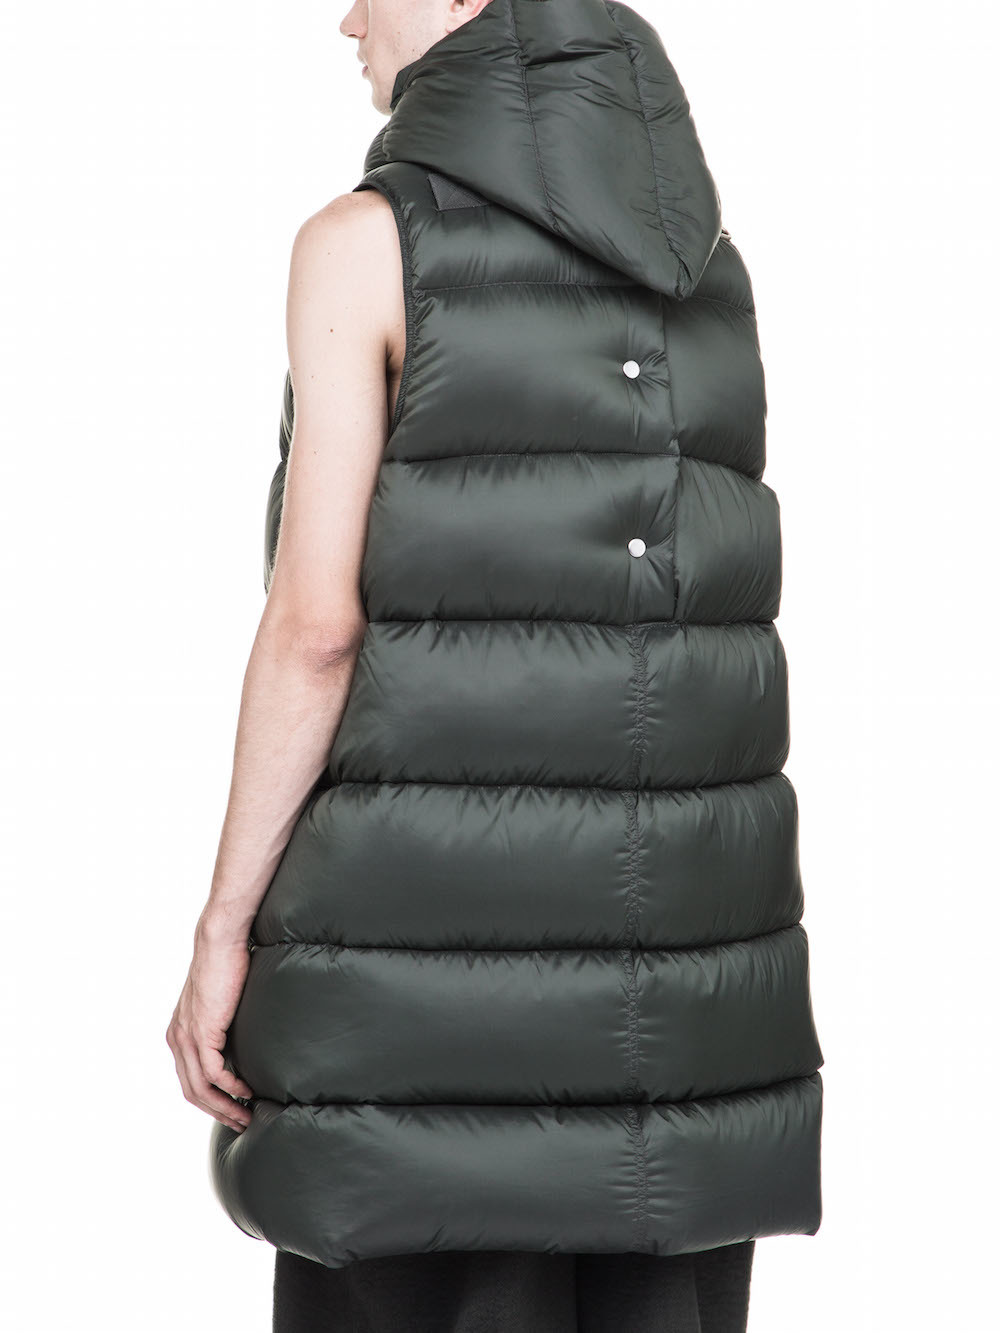 RICK OWENS OFF-THE-RUNWAY LINER IN GREEN